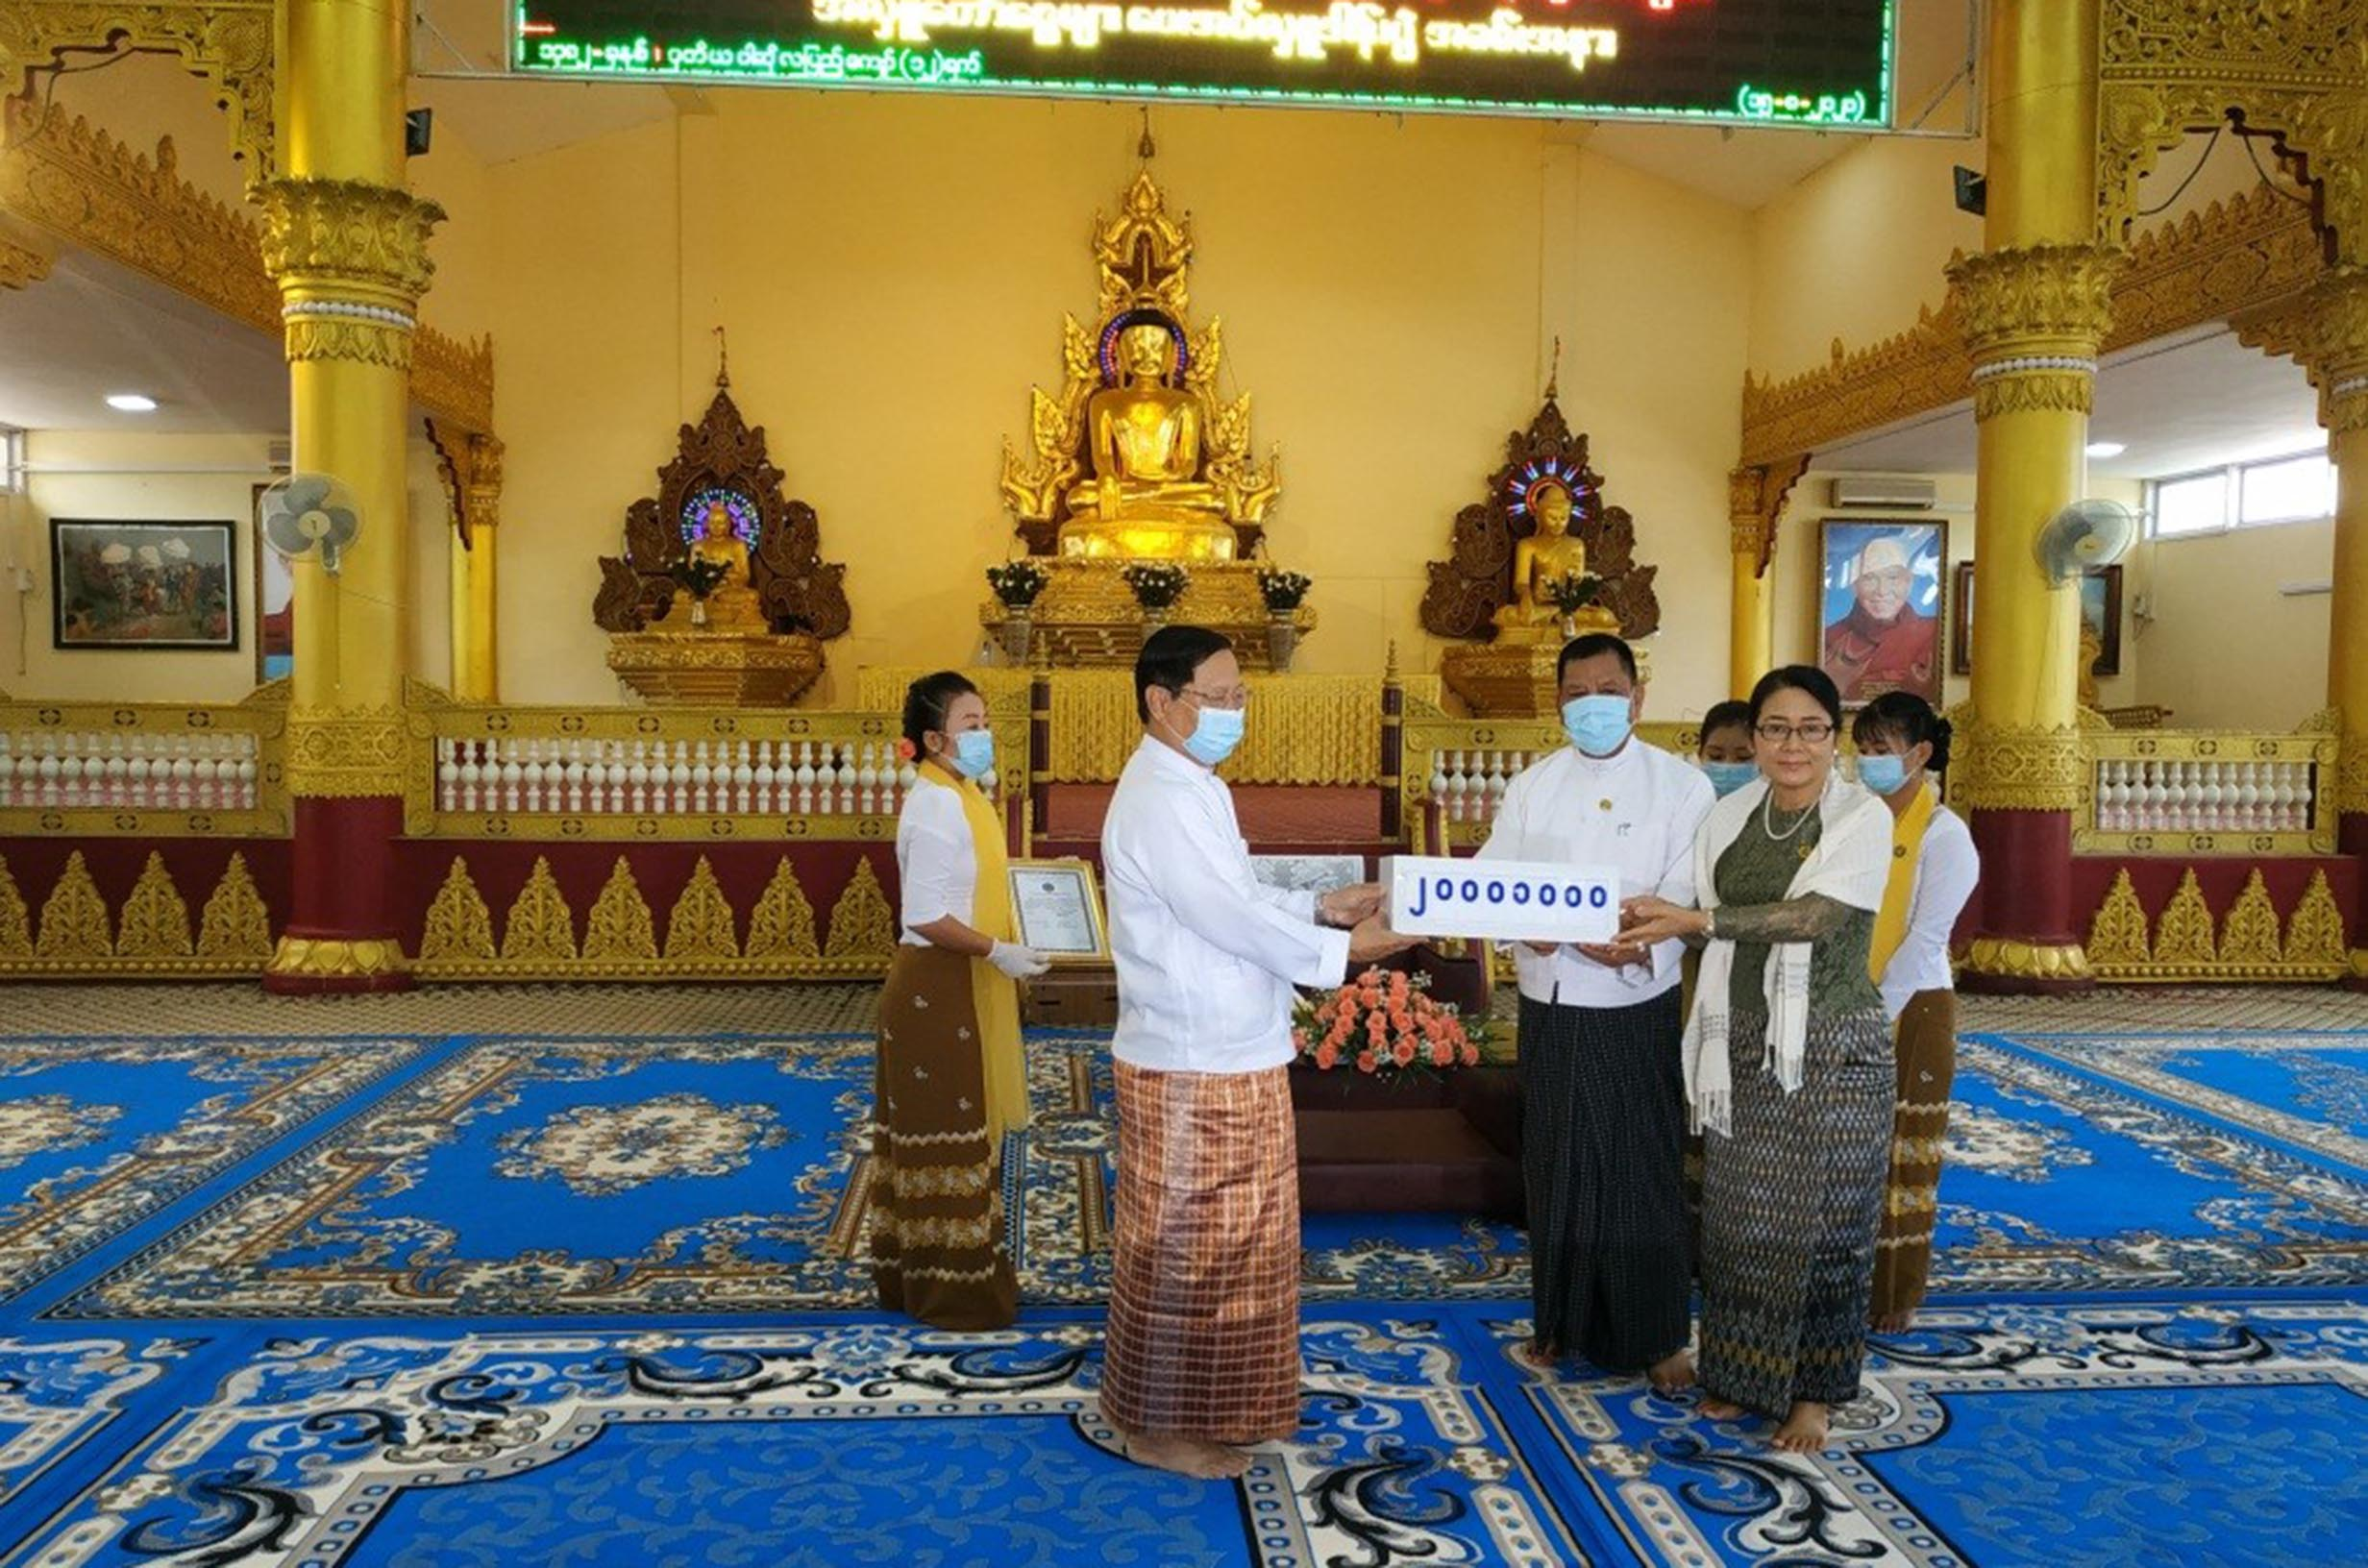 Union Minister Thura U Aung Ko receives K20 million cash donation from a well-wisher at the State Pariyatti Sasana University in Mandalay on 15 August 2020.Photo : MNA